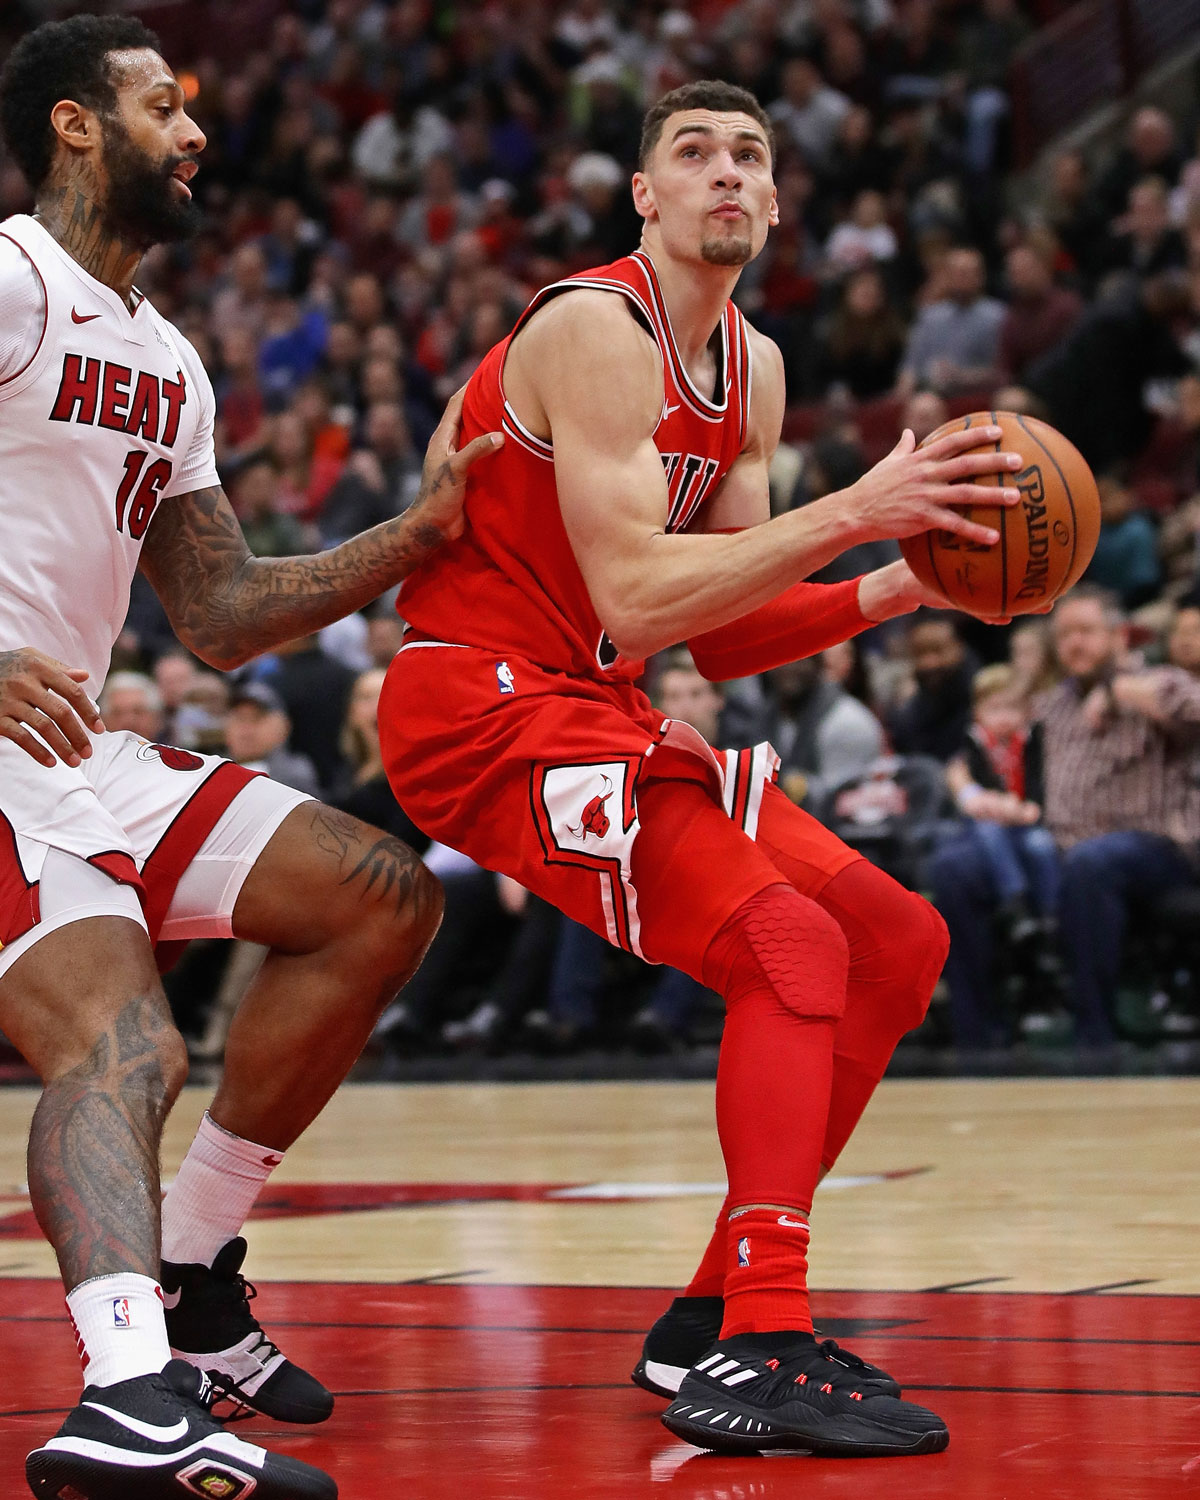 Zach LaVine looking to make a move to the basket against the Miami Heat.